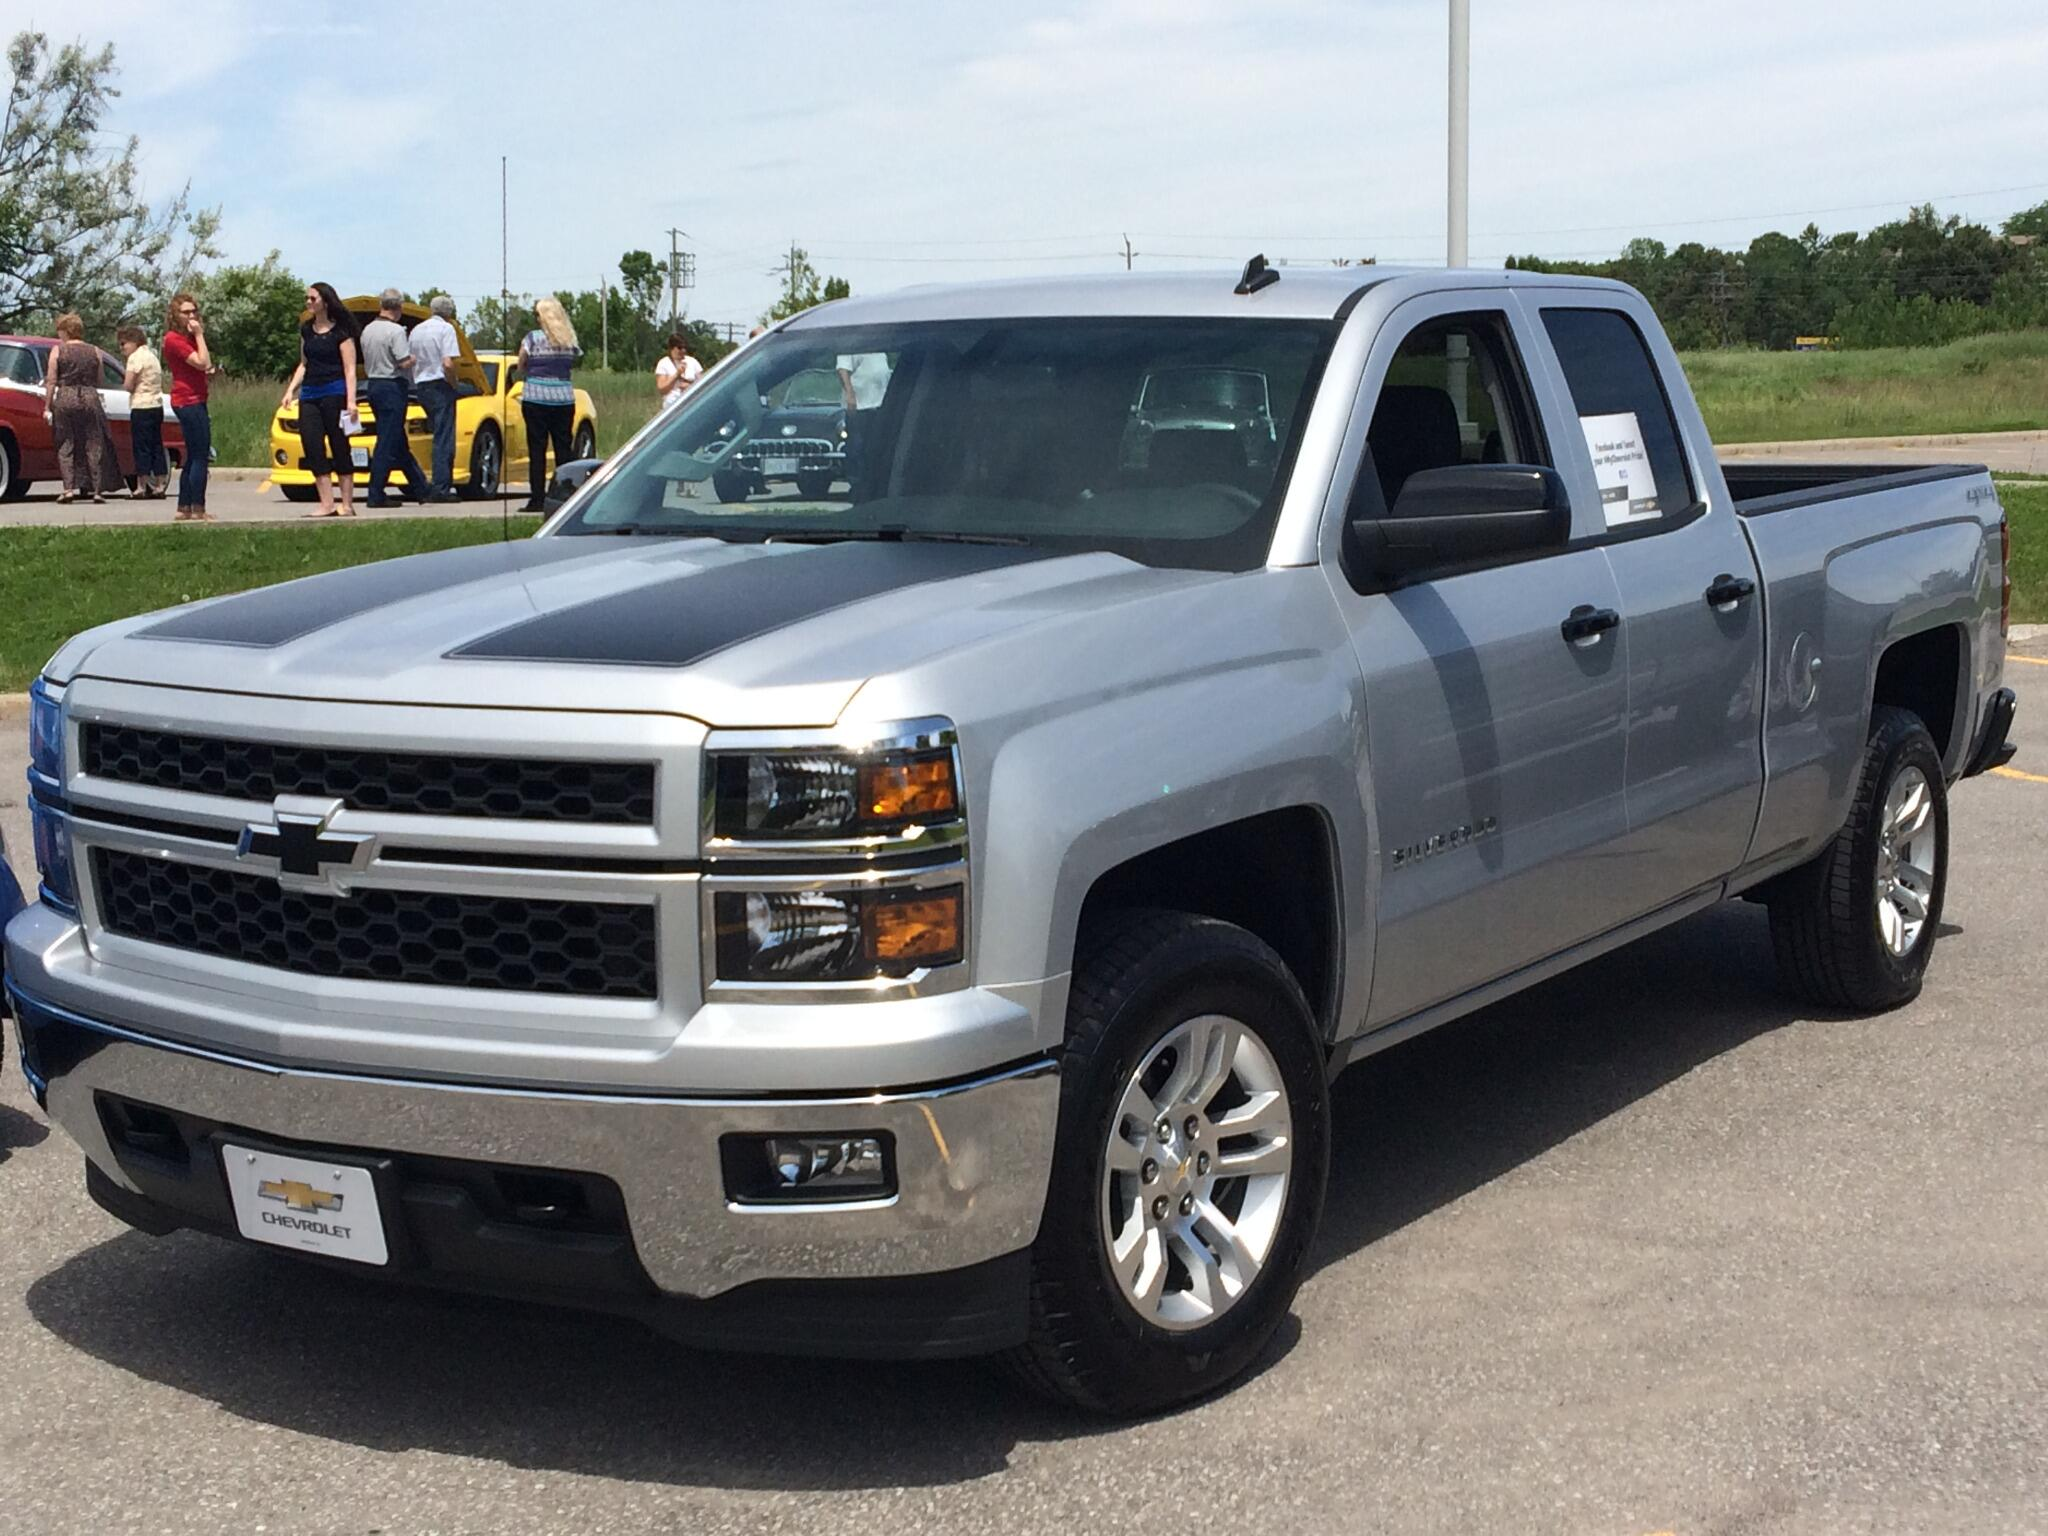 chevrolet canada on twitter the new silverado rally 1 limited edition package share our. Black Bedroom Furniture Sets. Home Design Ideas